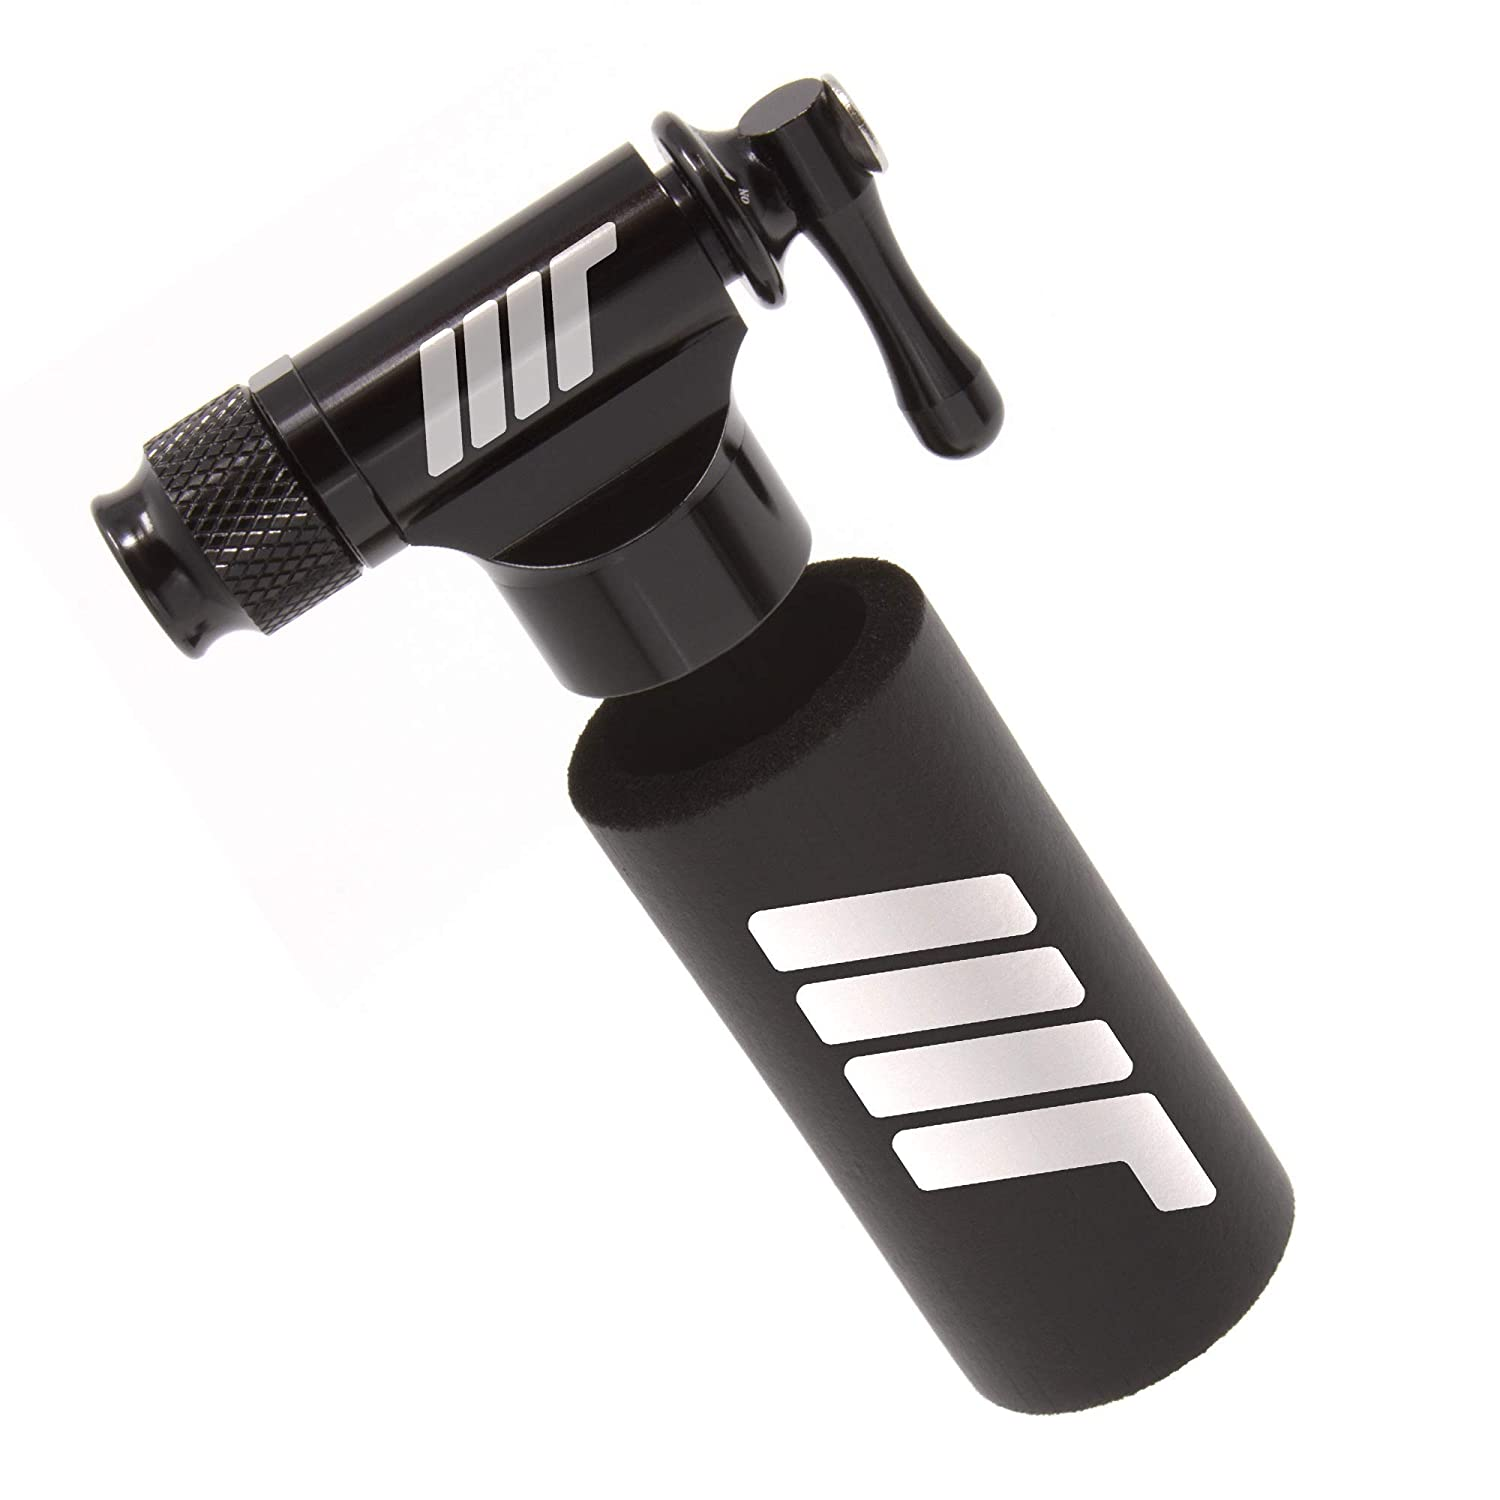 Manual Transport CO2 Inflator - Quick & Easy - Presta and Schrader Valve Compatible - Bicycle Tire Pump for Road and Mountain Bikes - Insulated Sleeve - No CO2 Cartridges Included